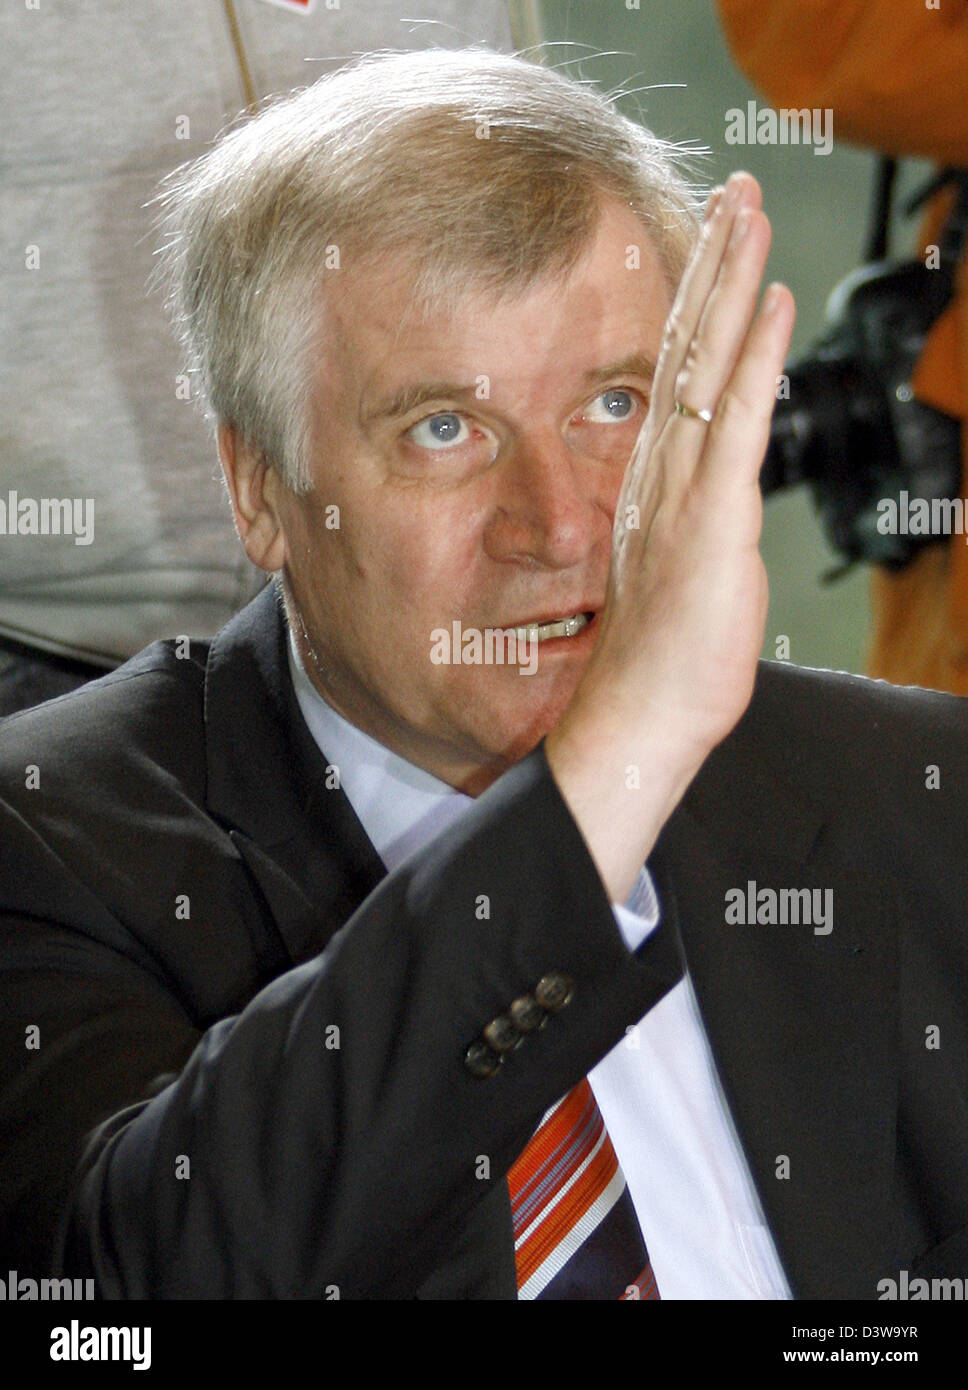 Agriculture Minister Horst Seehofer (CSU) gestures prior to a meeting of the federal cabinet at the Chancellery - Stock Image